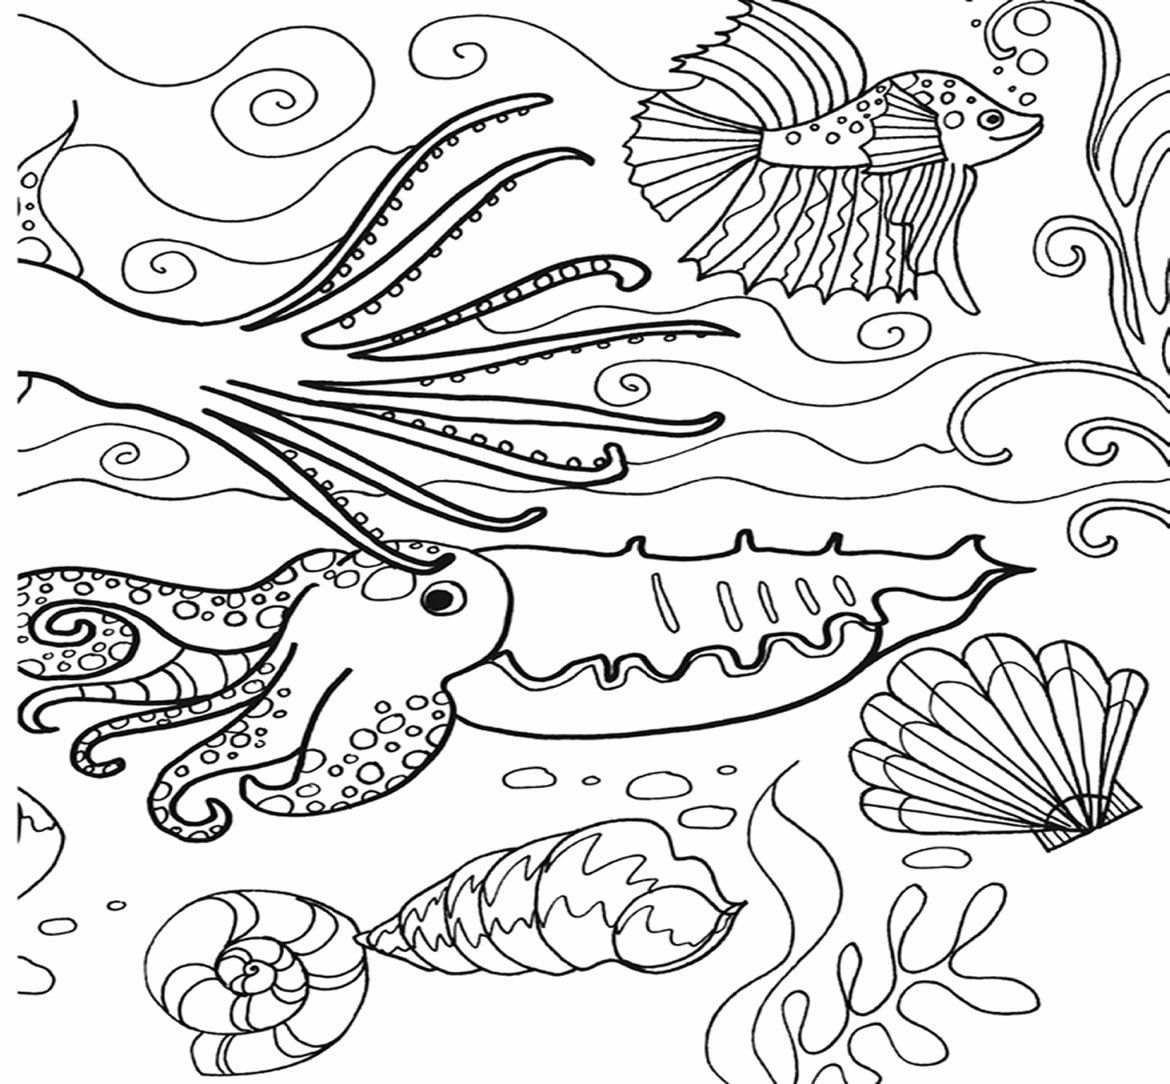 ocean plants coloring pages how to draw coral coral reef coloring pages for kids plants coloring ocean pages